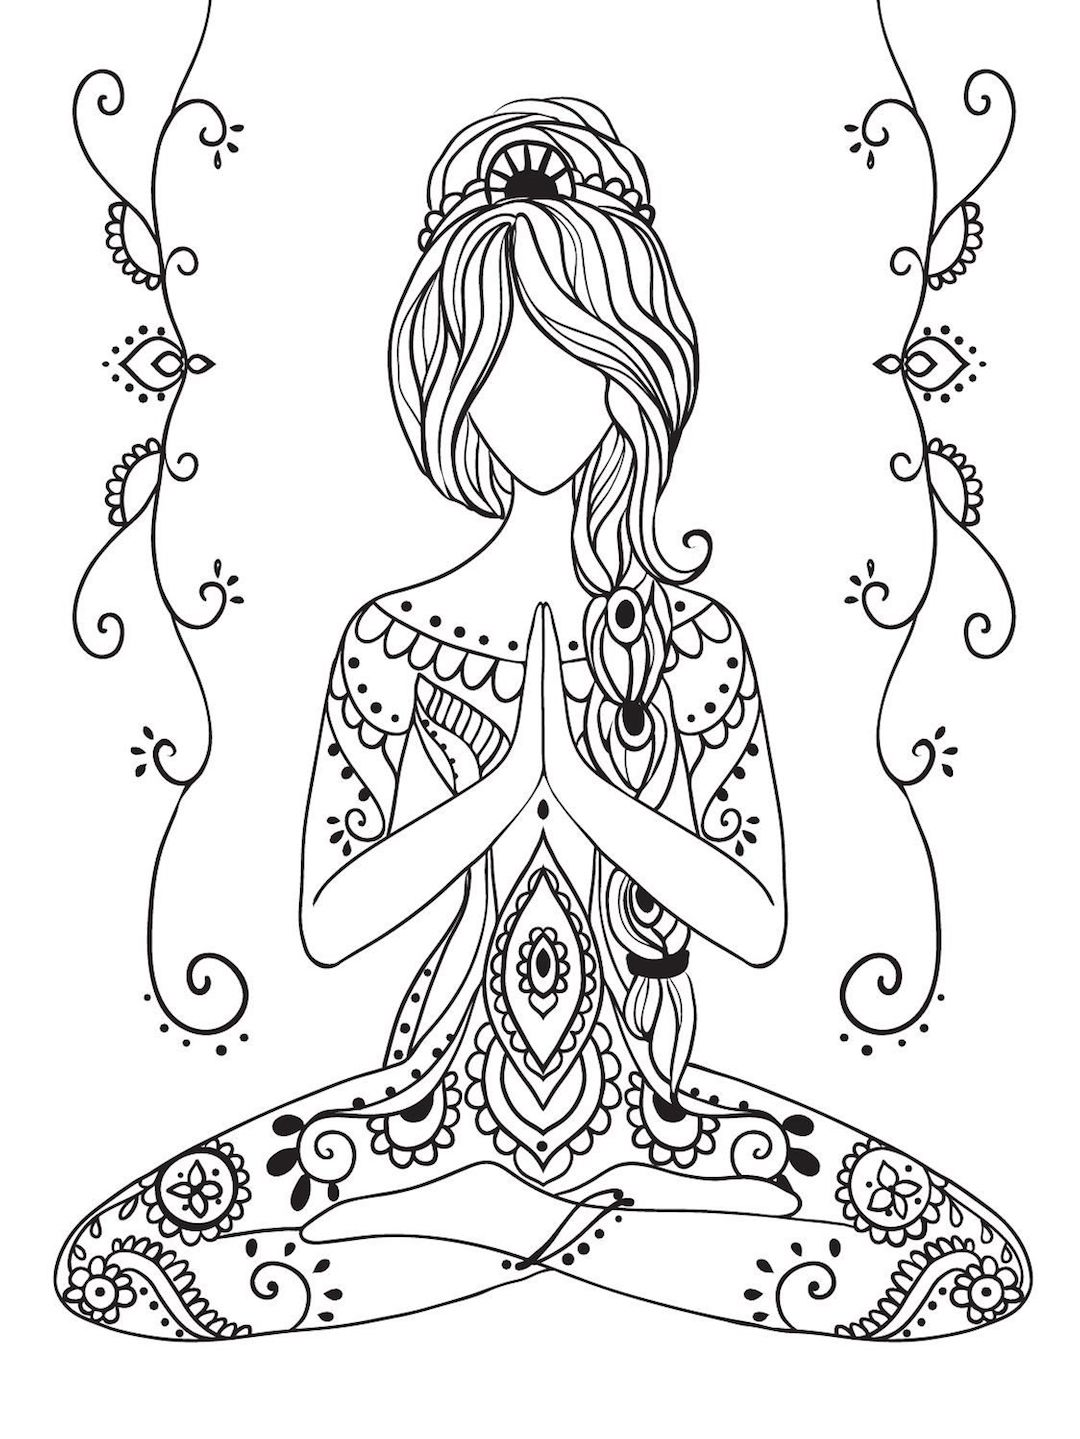 Floor Exercise Coloring Page | 1439x1080